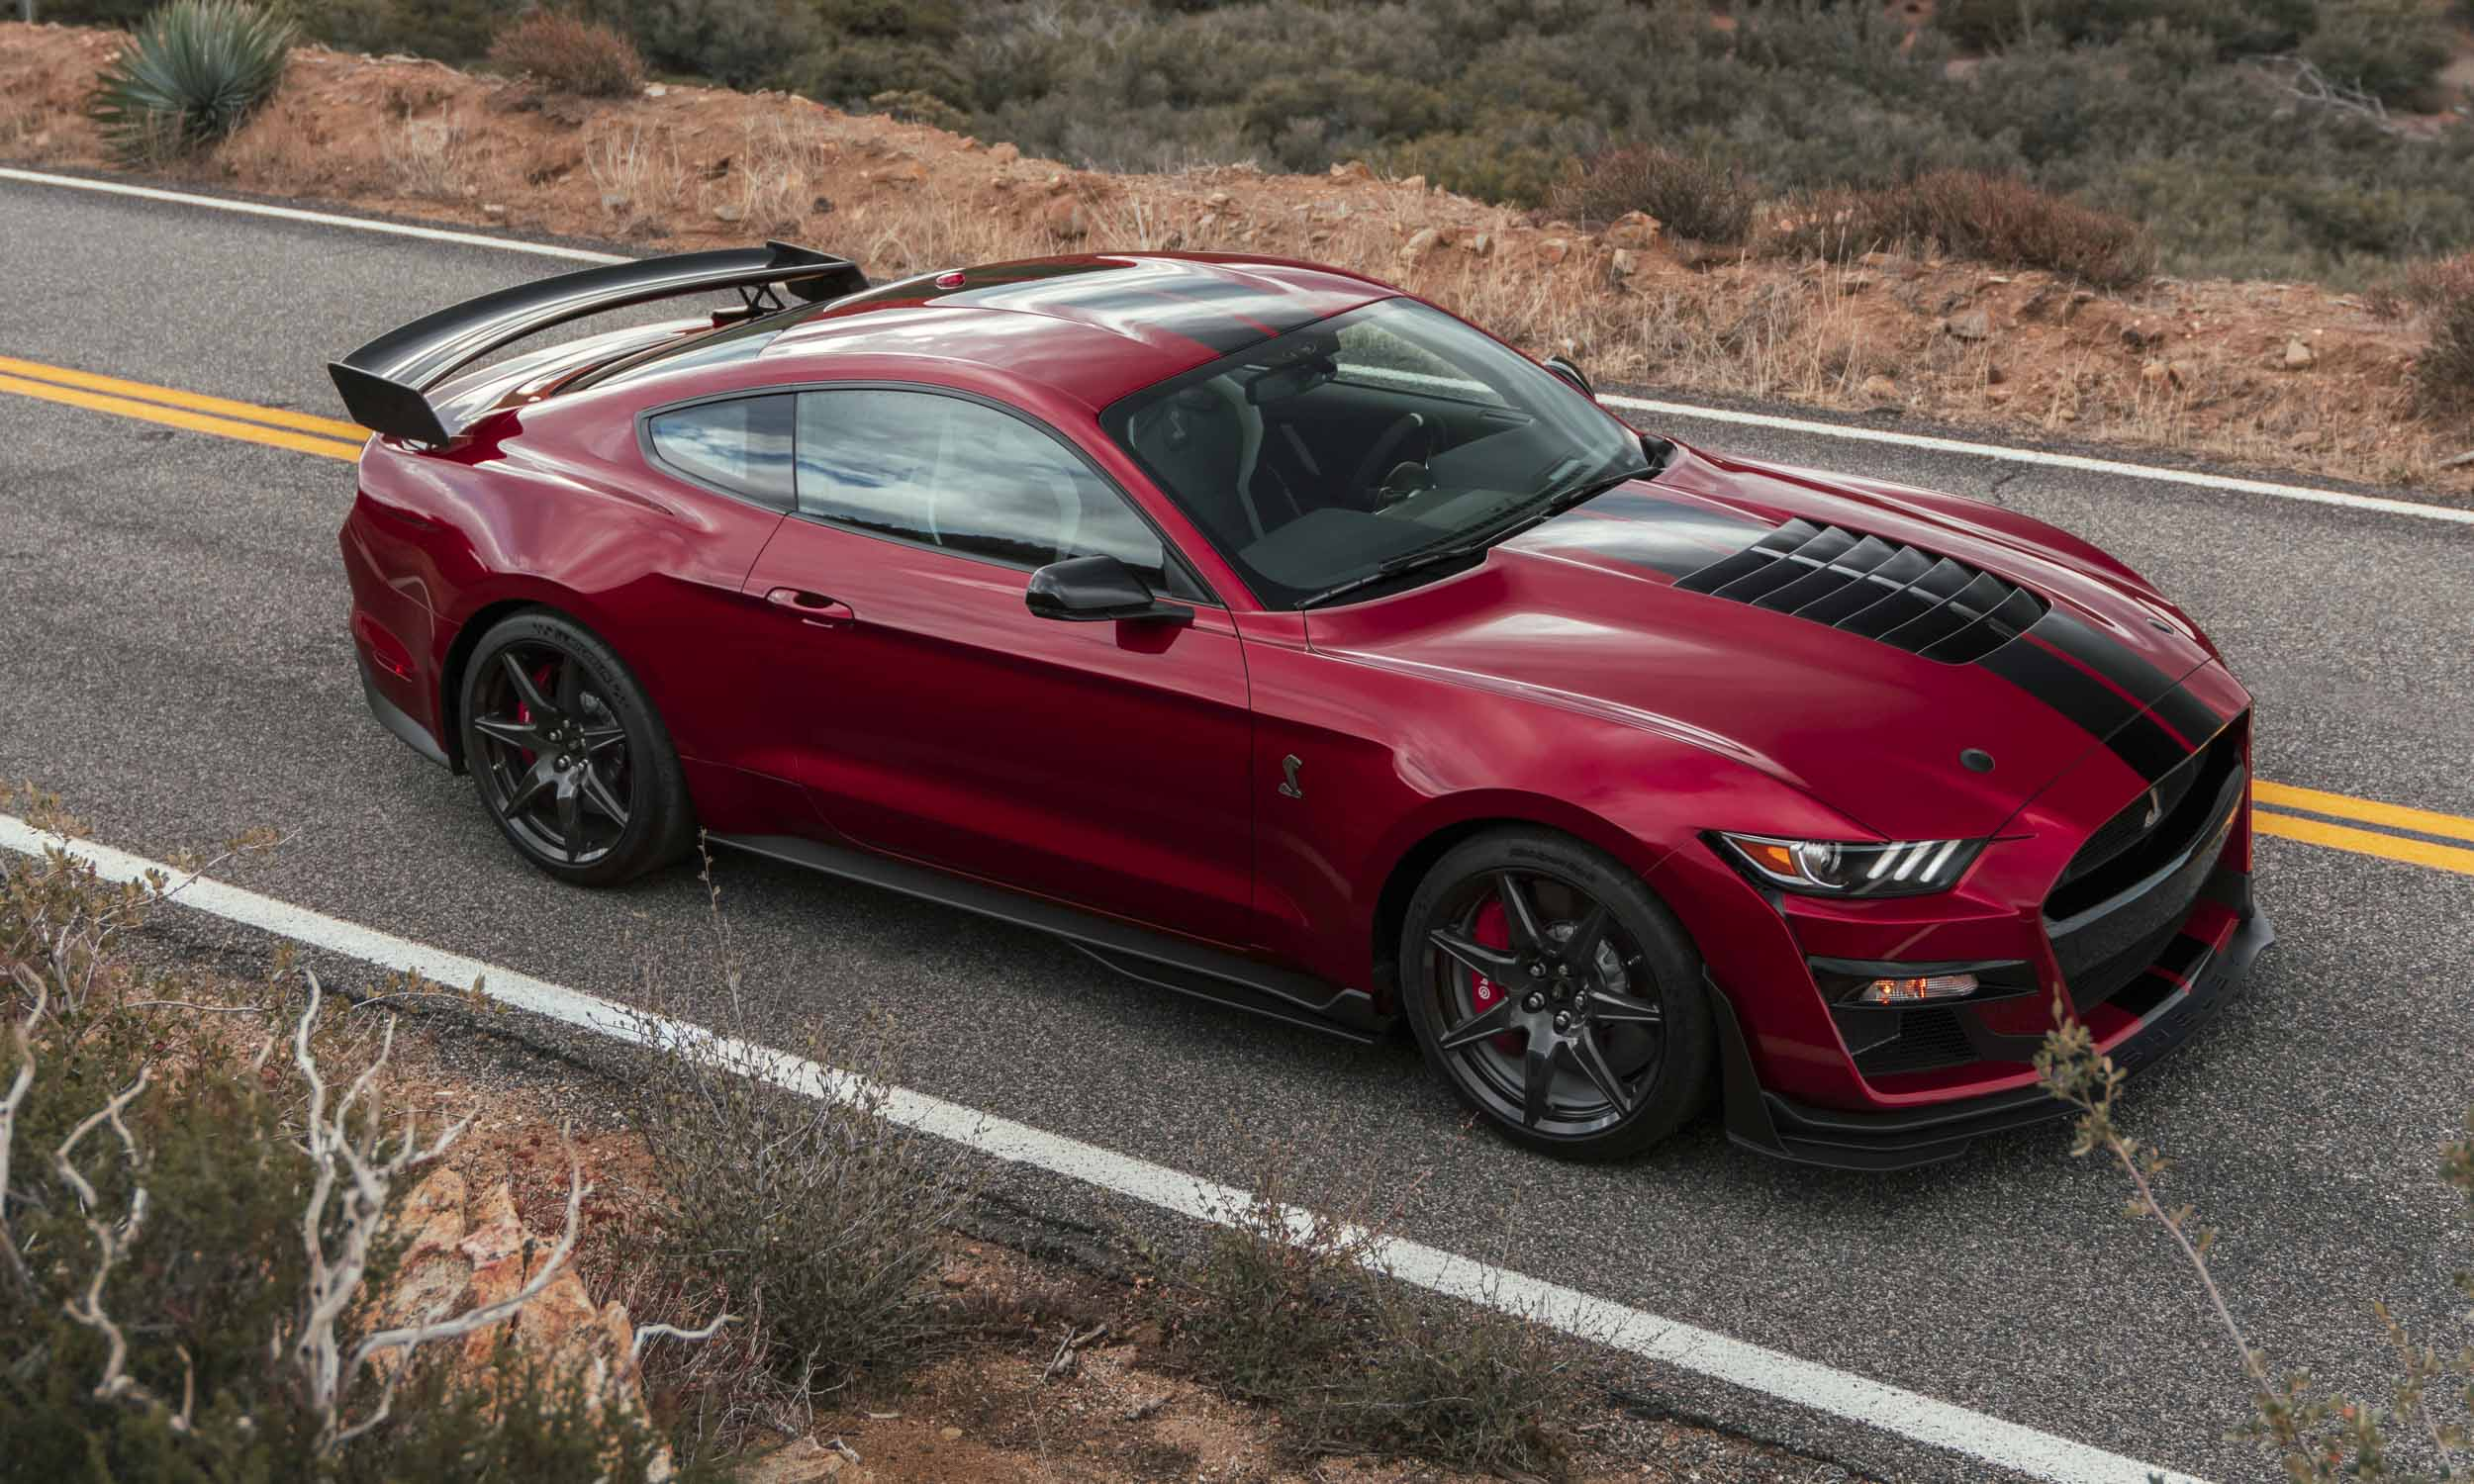 2019 Detroit Auto Show: 2020 Ford Shelby GT500 | Our Auto Expert